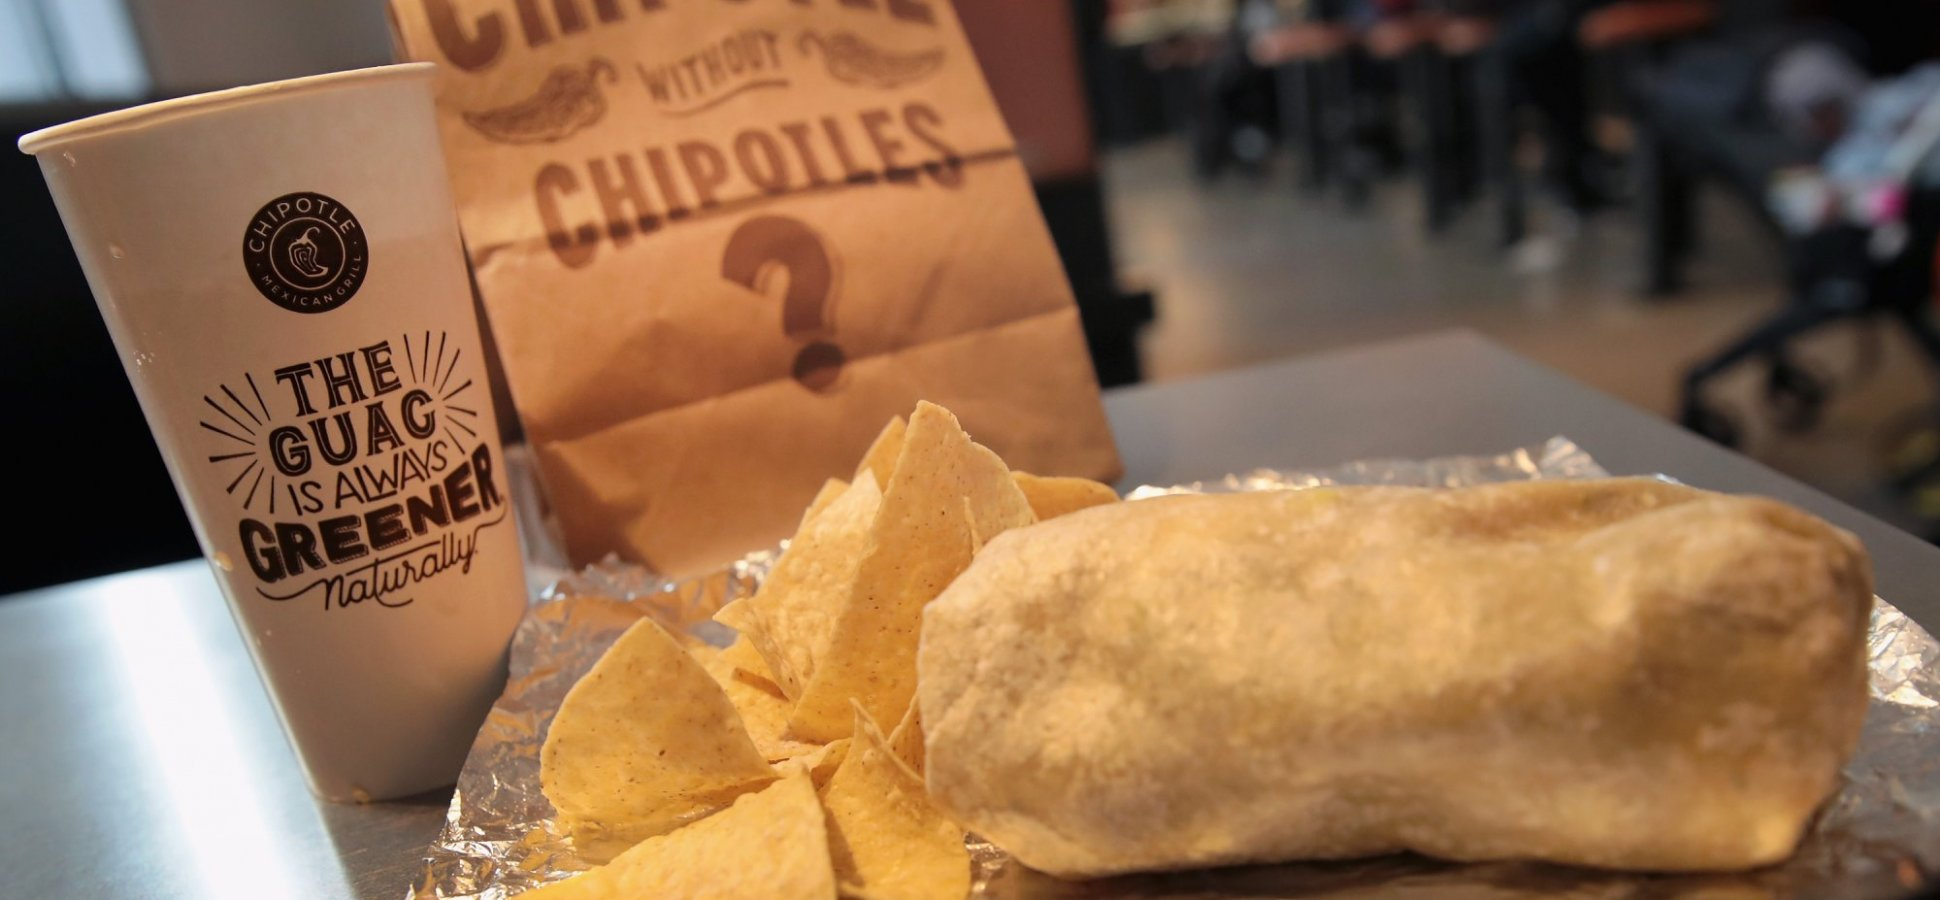 A Year Ago, Chipotle Hired Taco Bell's CEO. Now Chipotle Is Crushing It